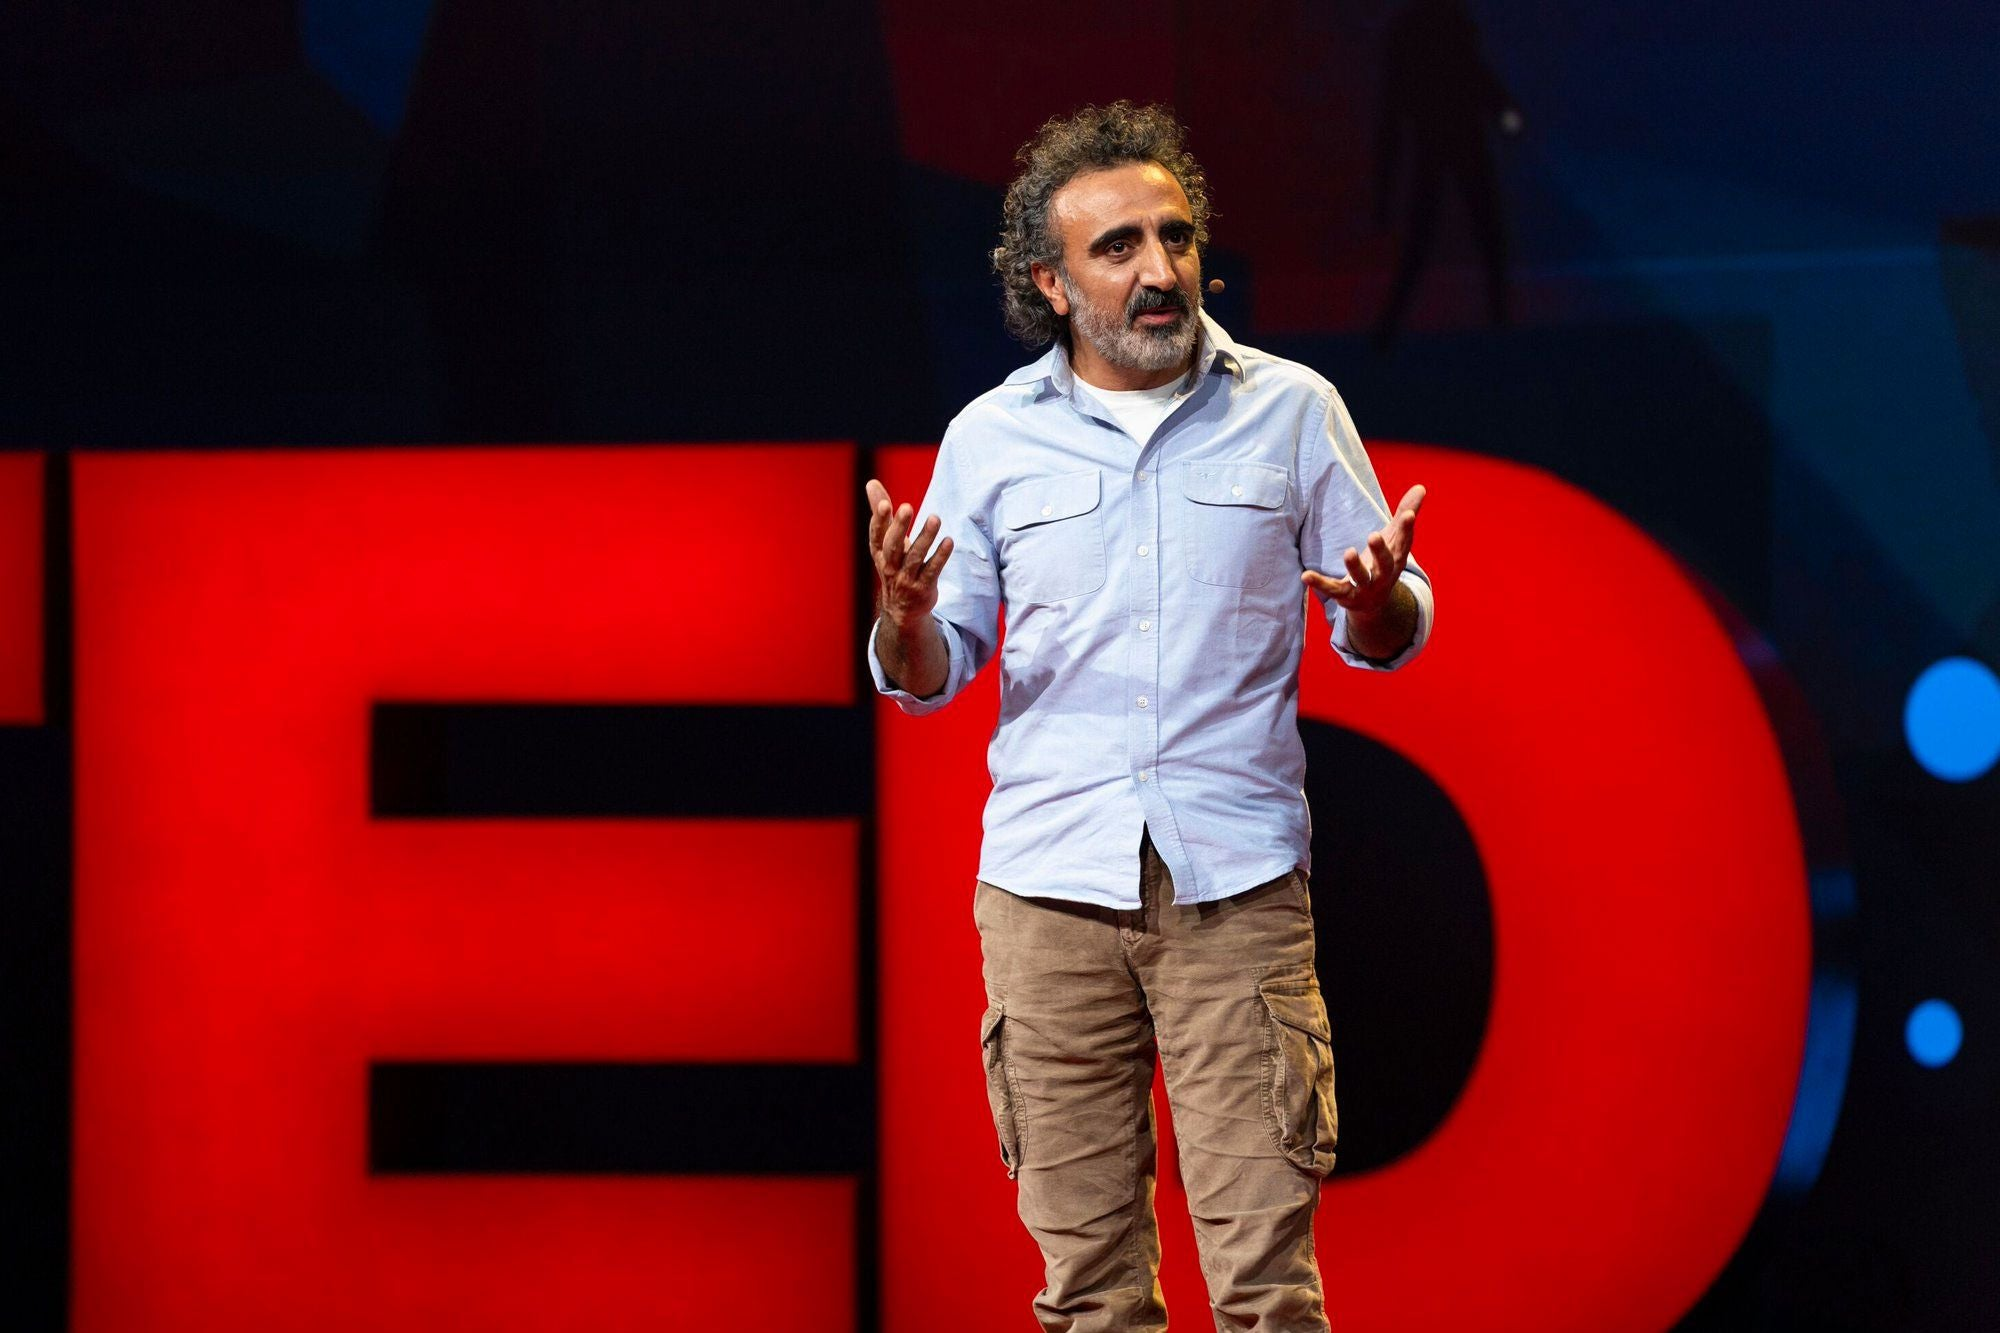 My Top 4 Takeaways From This Year's Annual TED Conference